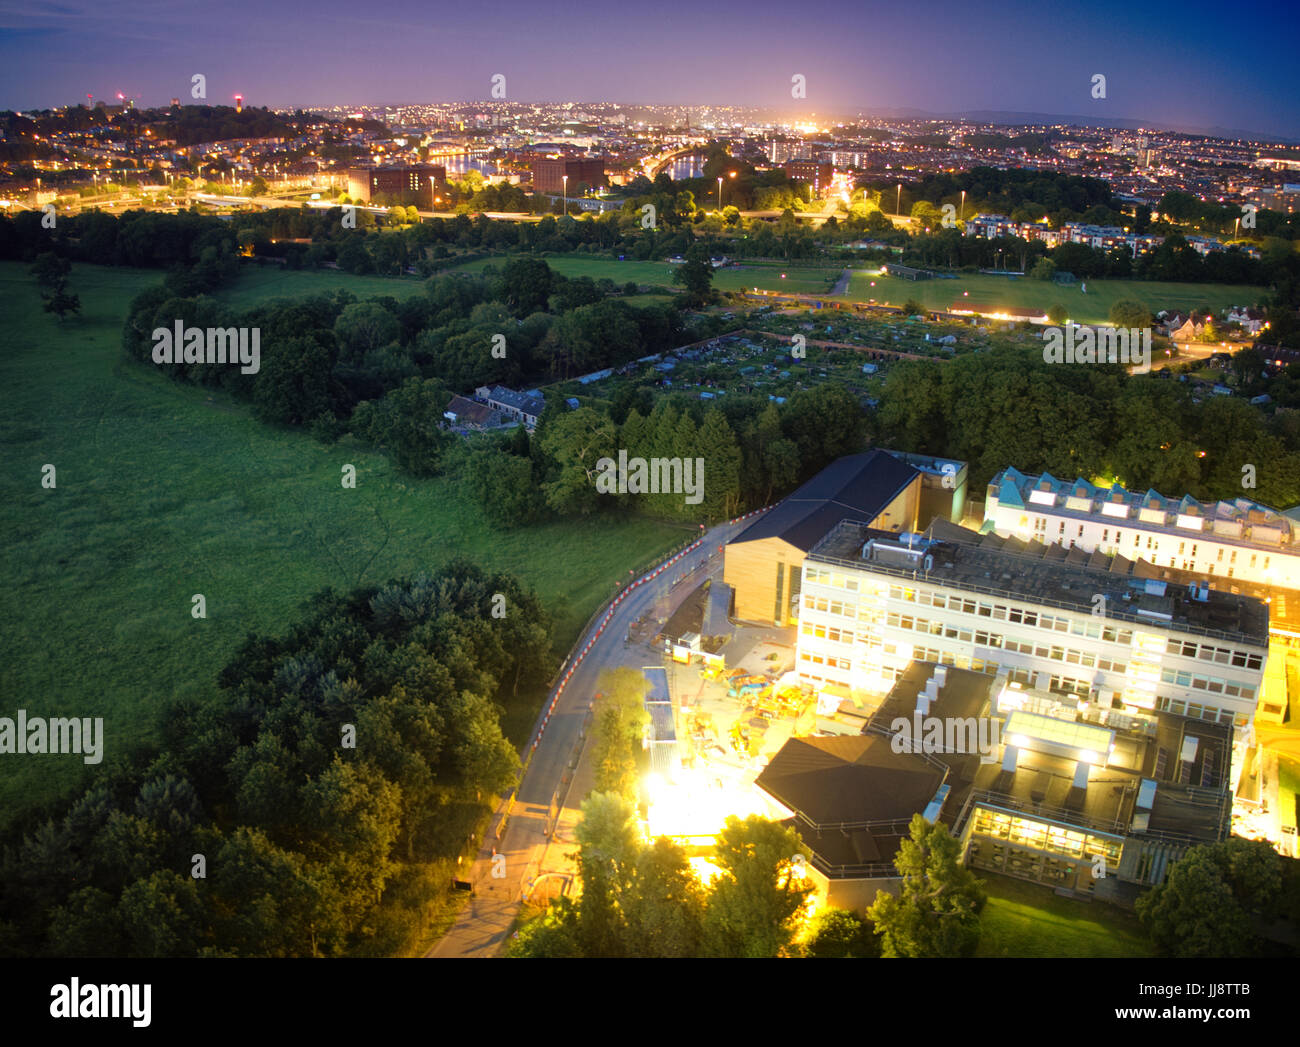 Aerial view of UWE Bower Ashton Campus under construction, the City of Bristol at night - Stock Image